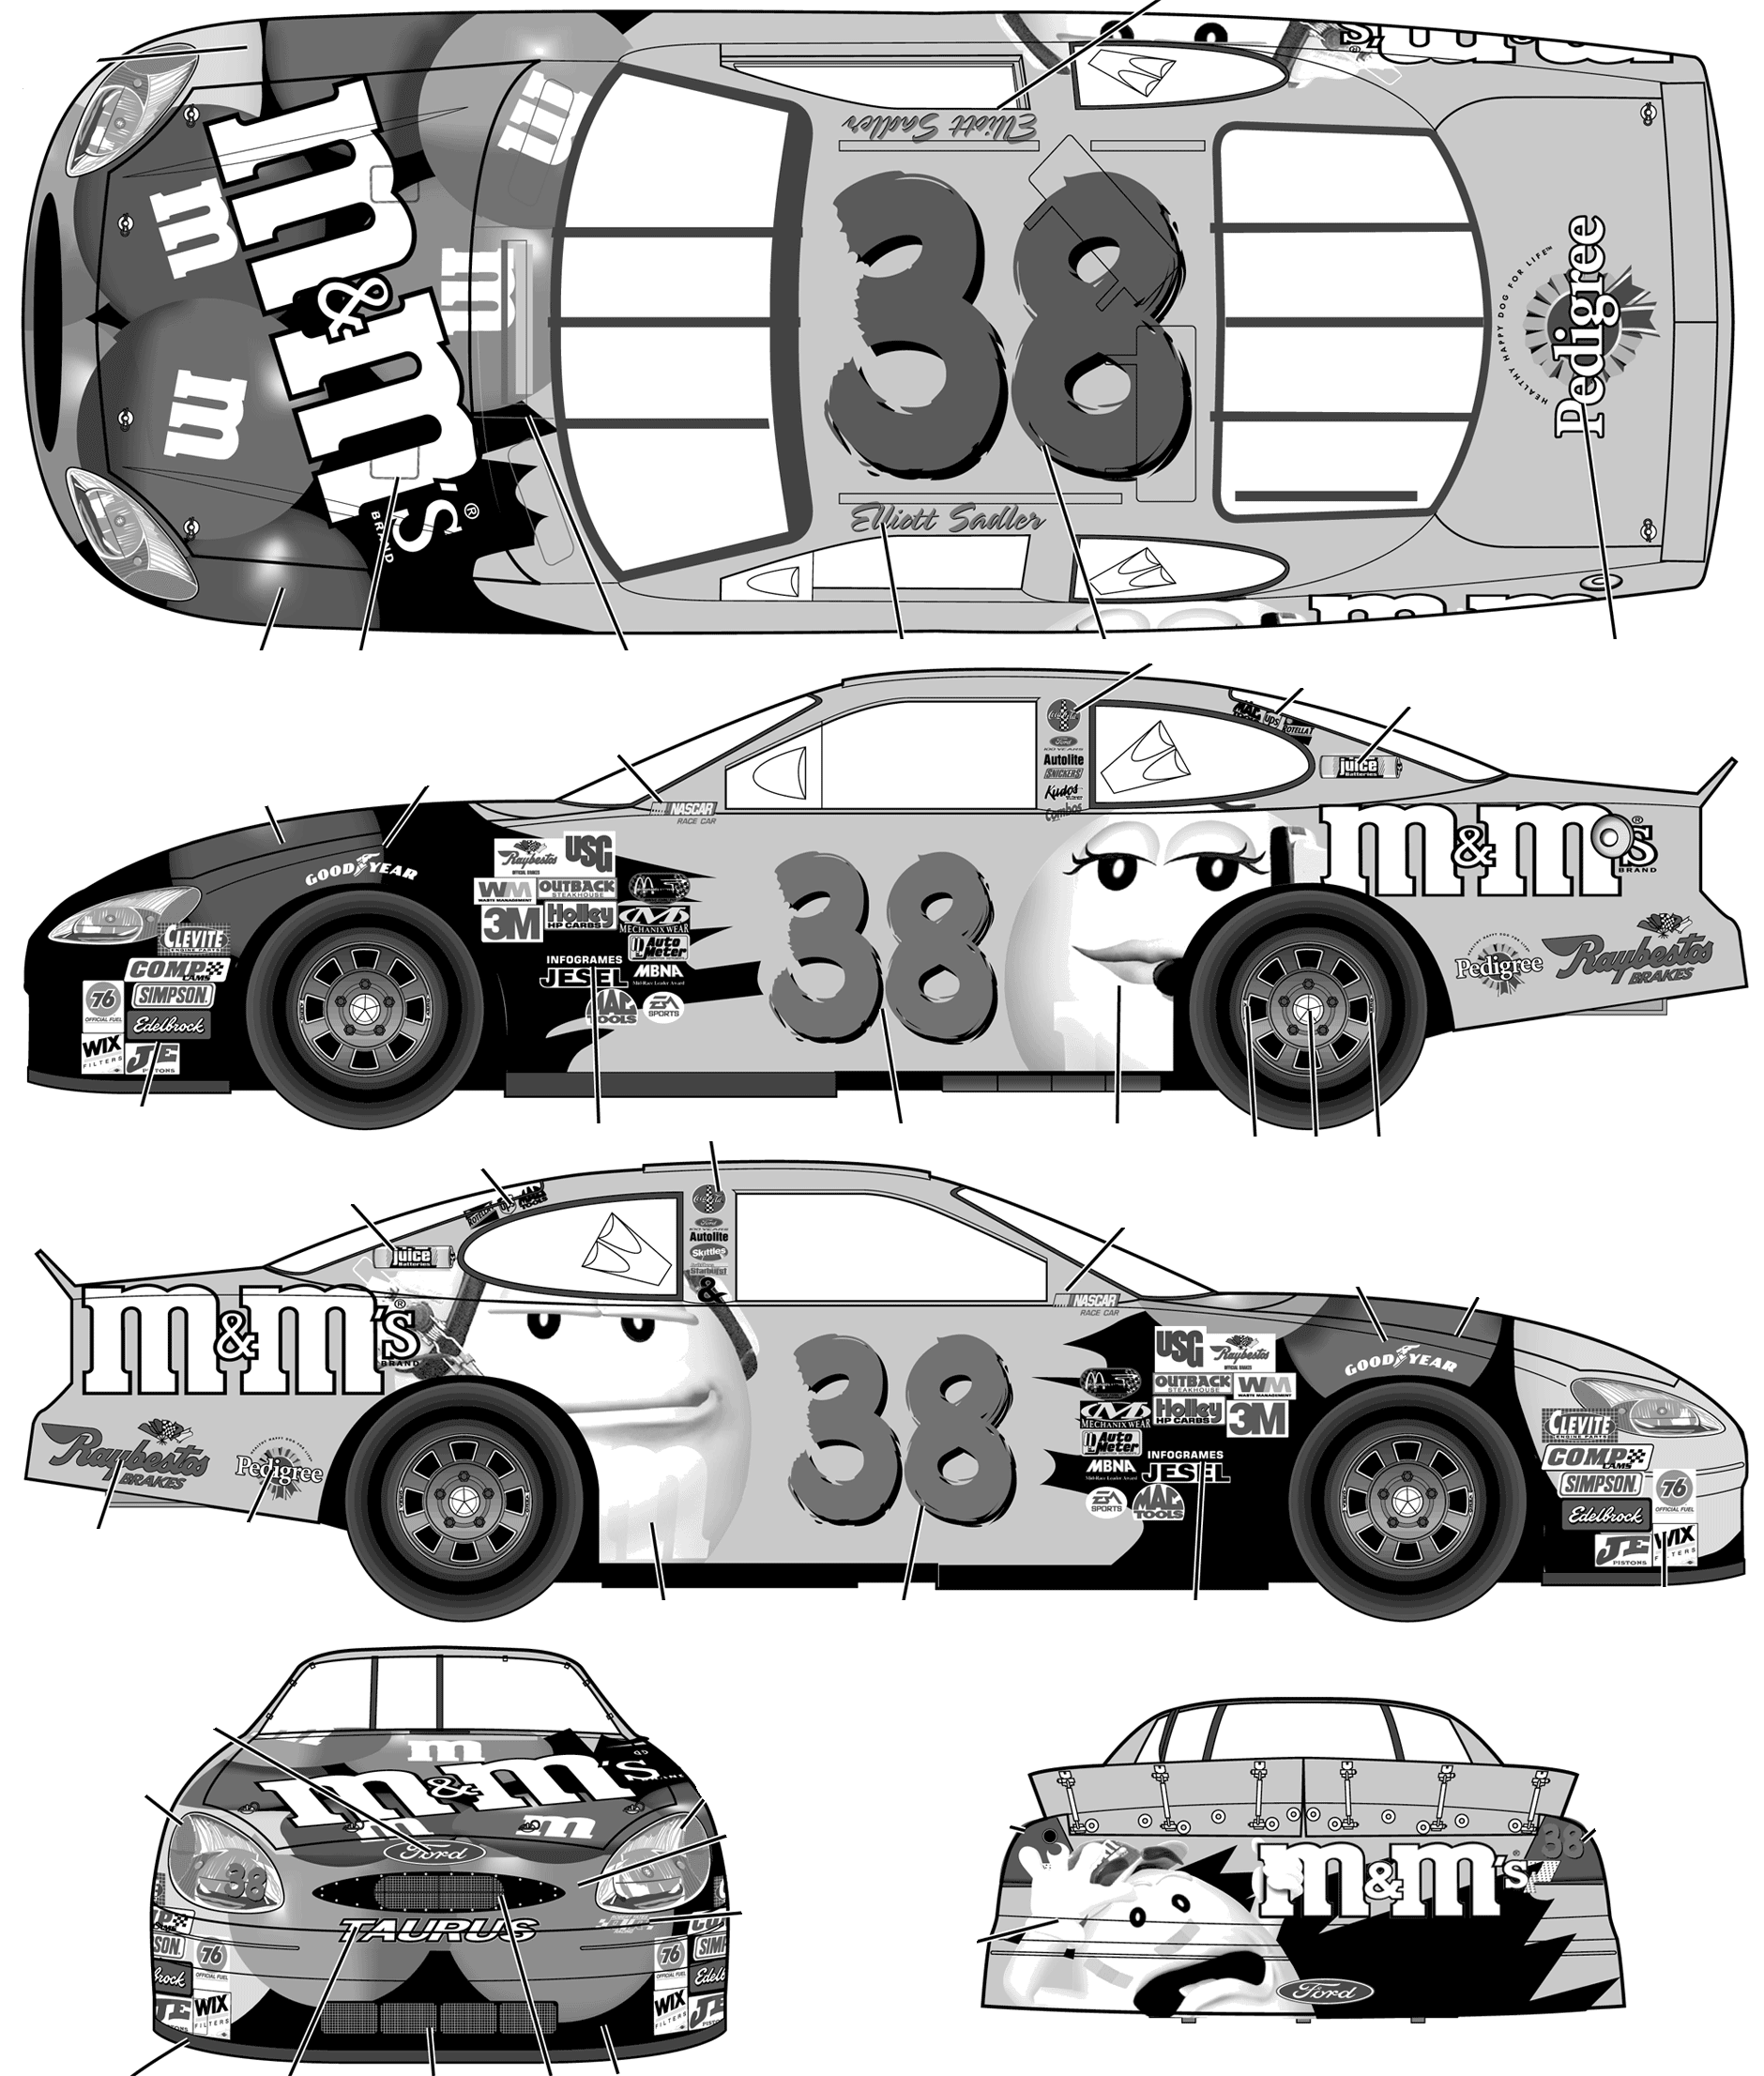 Ford taurus stock car no 38 elliot sadler mms coupe blueprints ford taurus stock car no 38 elliot sadler mms blueprints malvernweather Image collections